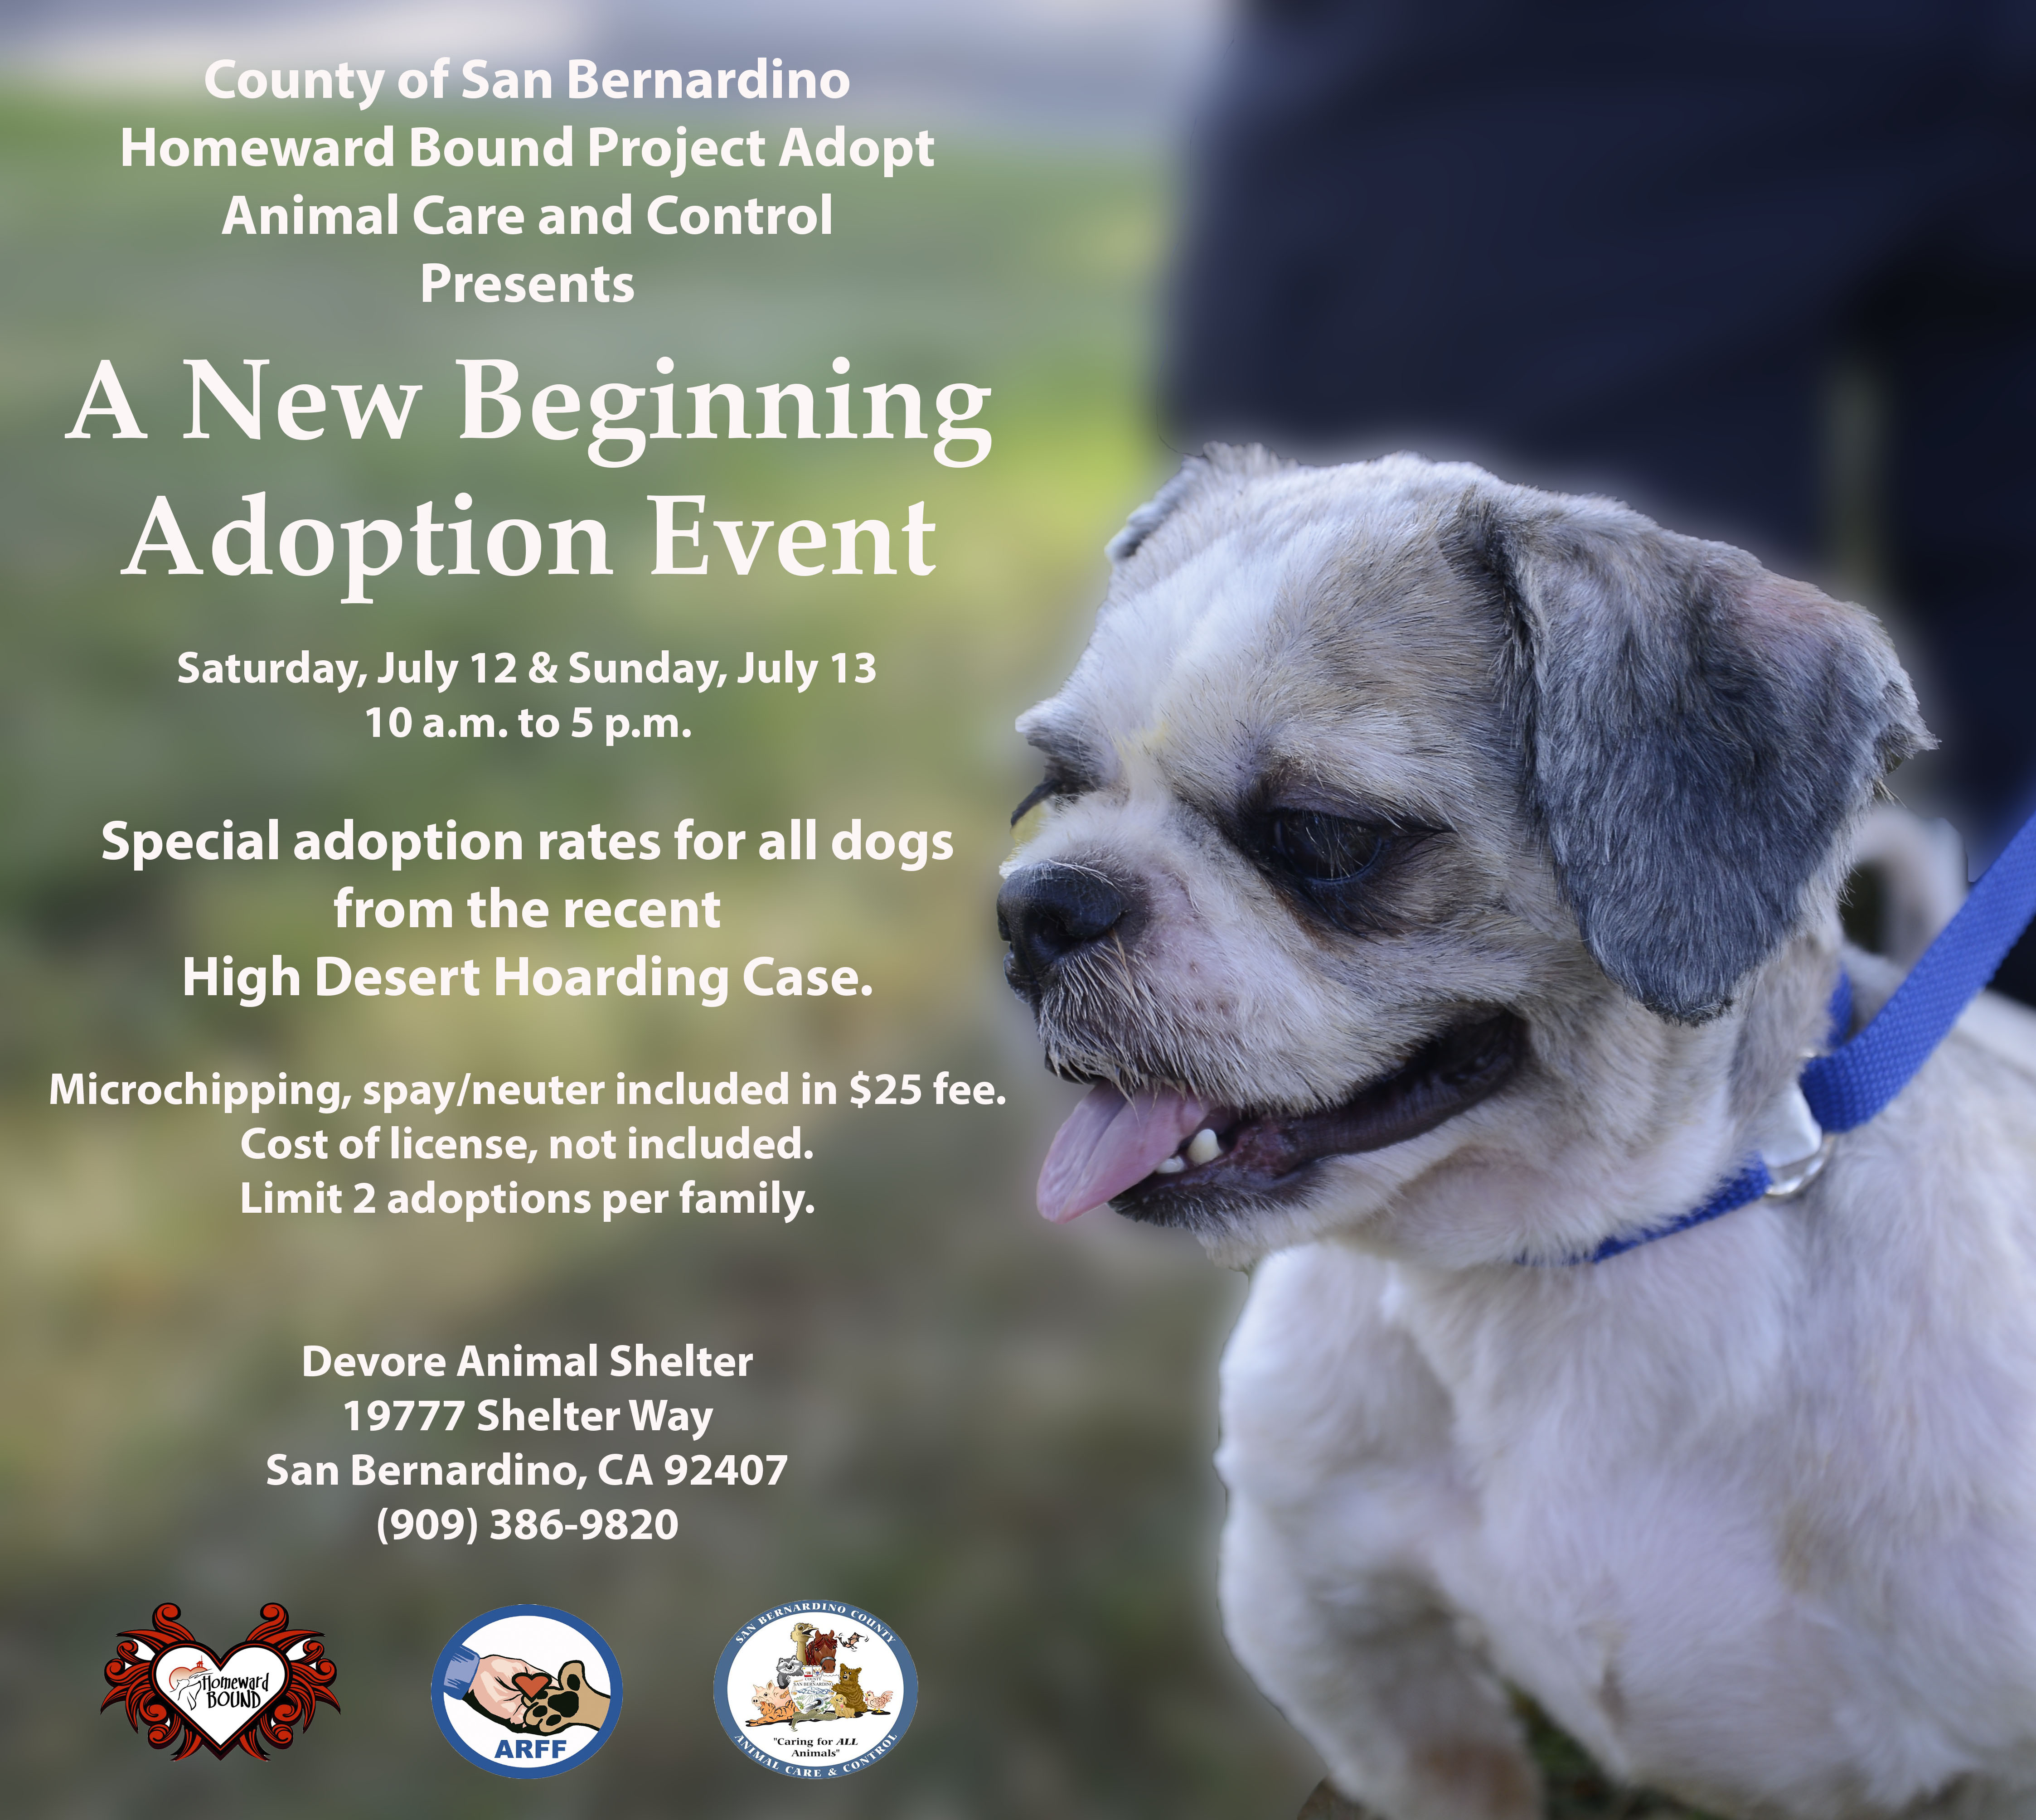 A New Beginning Adoption Event